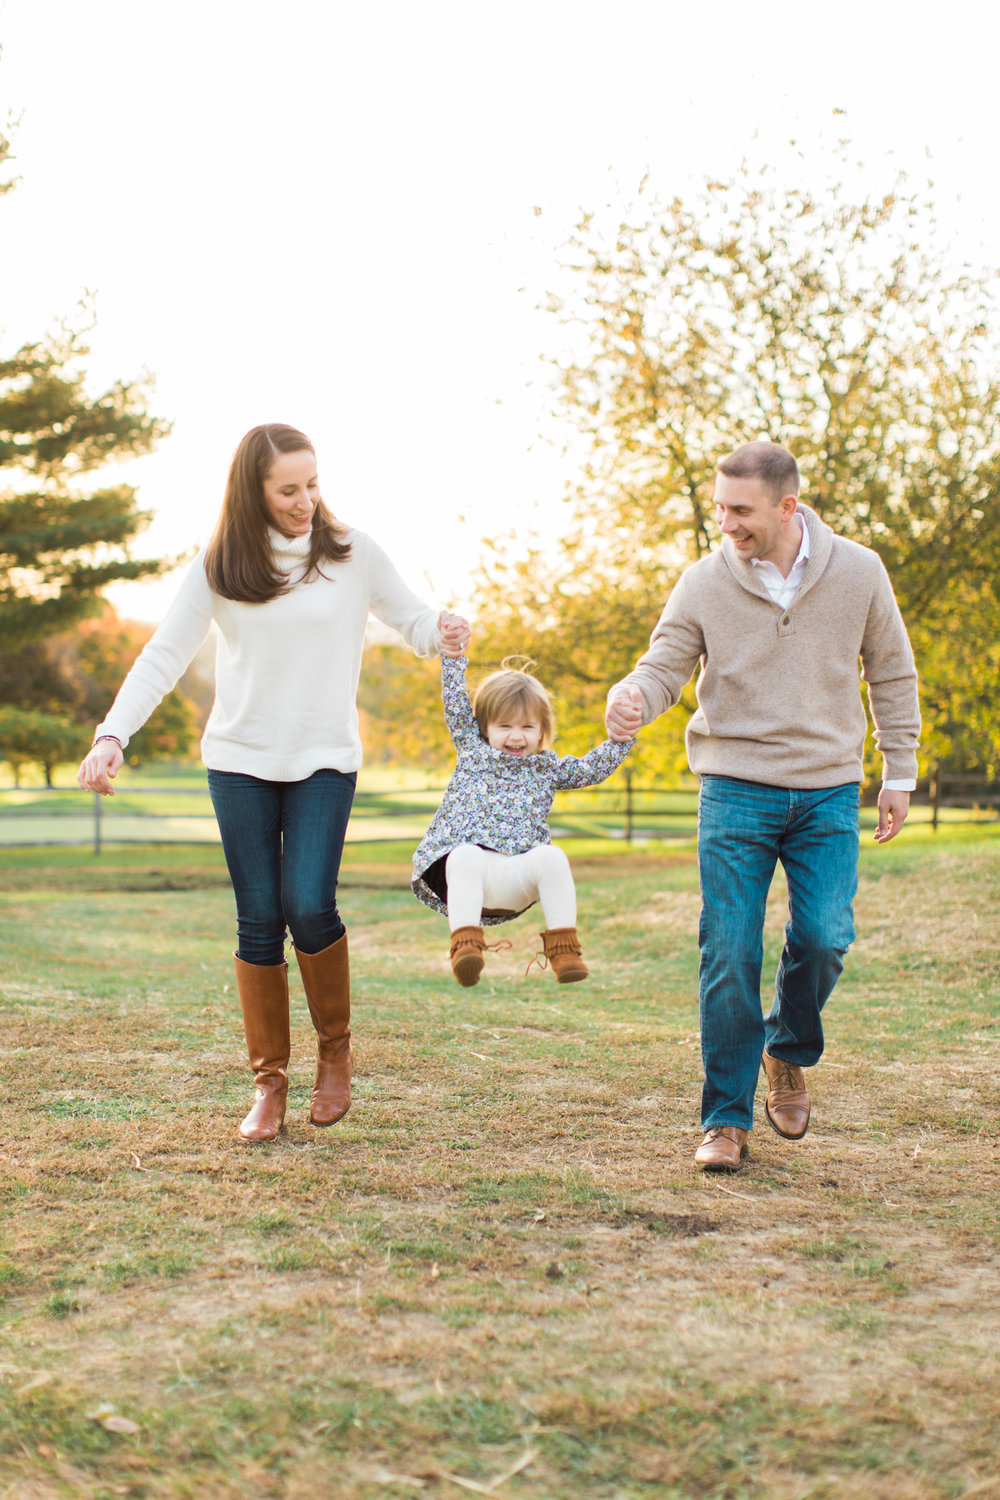 fairfield-county-wilton-connecticut-fall-family-mini-session-lifestyle-courtney-ann-photography